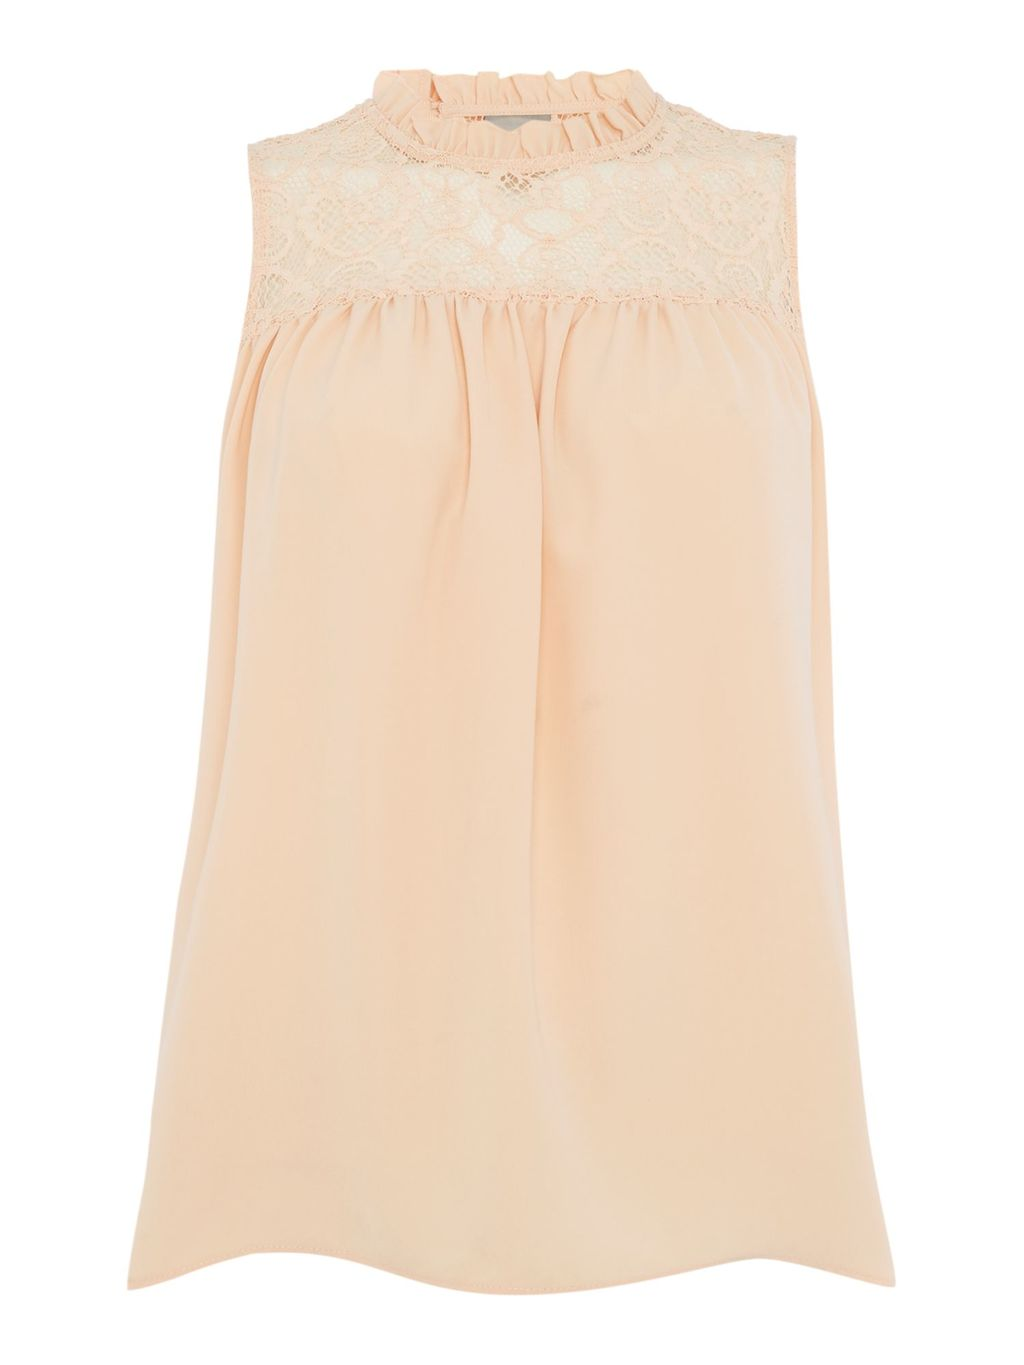 Sleeveless Top, Pink - pattern: plain; sleeve style: sleeveless; length: below the bottom; bust detail: ruching/gathering/draping/layers/pintuck pleats at bust; predominant colour: nude; occasions: casual, creative work; style: top; fibres: polyester/polyamide - mix; fit: body skimming; neckline: crew; sleeve length: sleeveless; texture group: sheer fabrics/chiffon/organza etc.; pattern type: fabric; season: a/w 2016